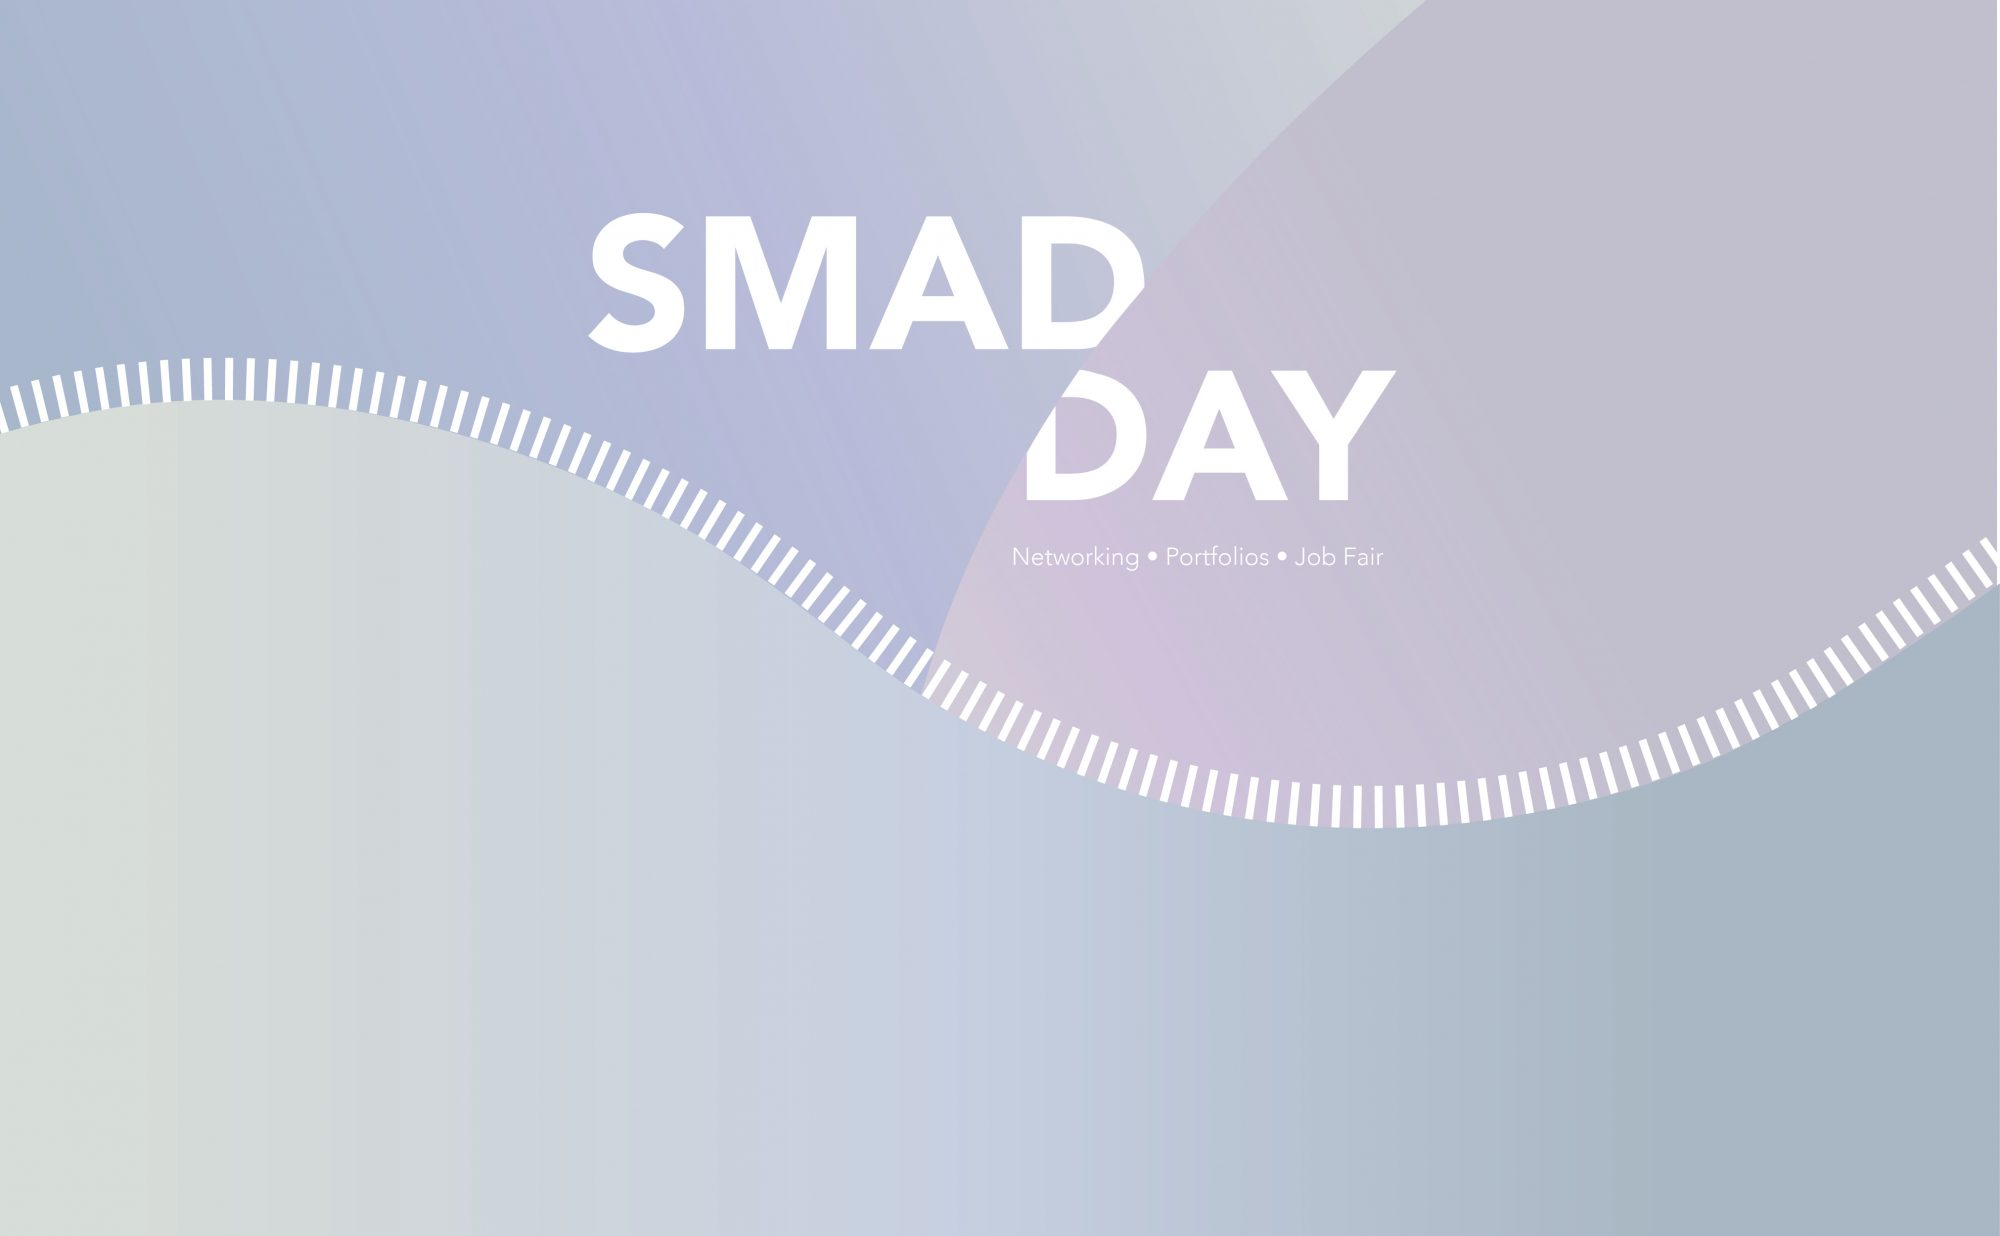 SMAD day 2017